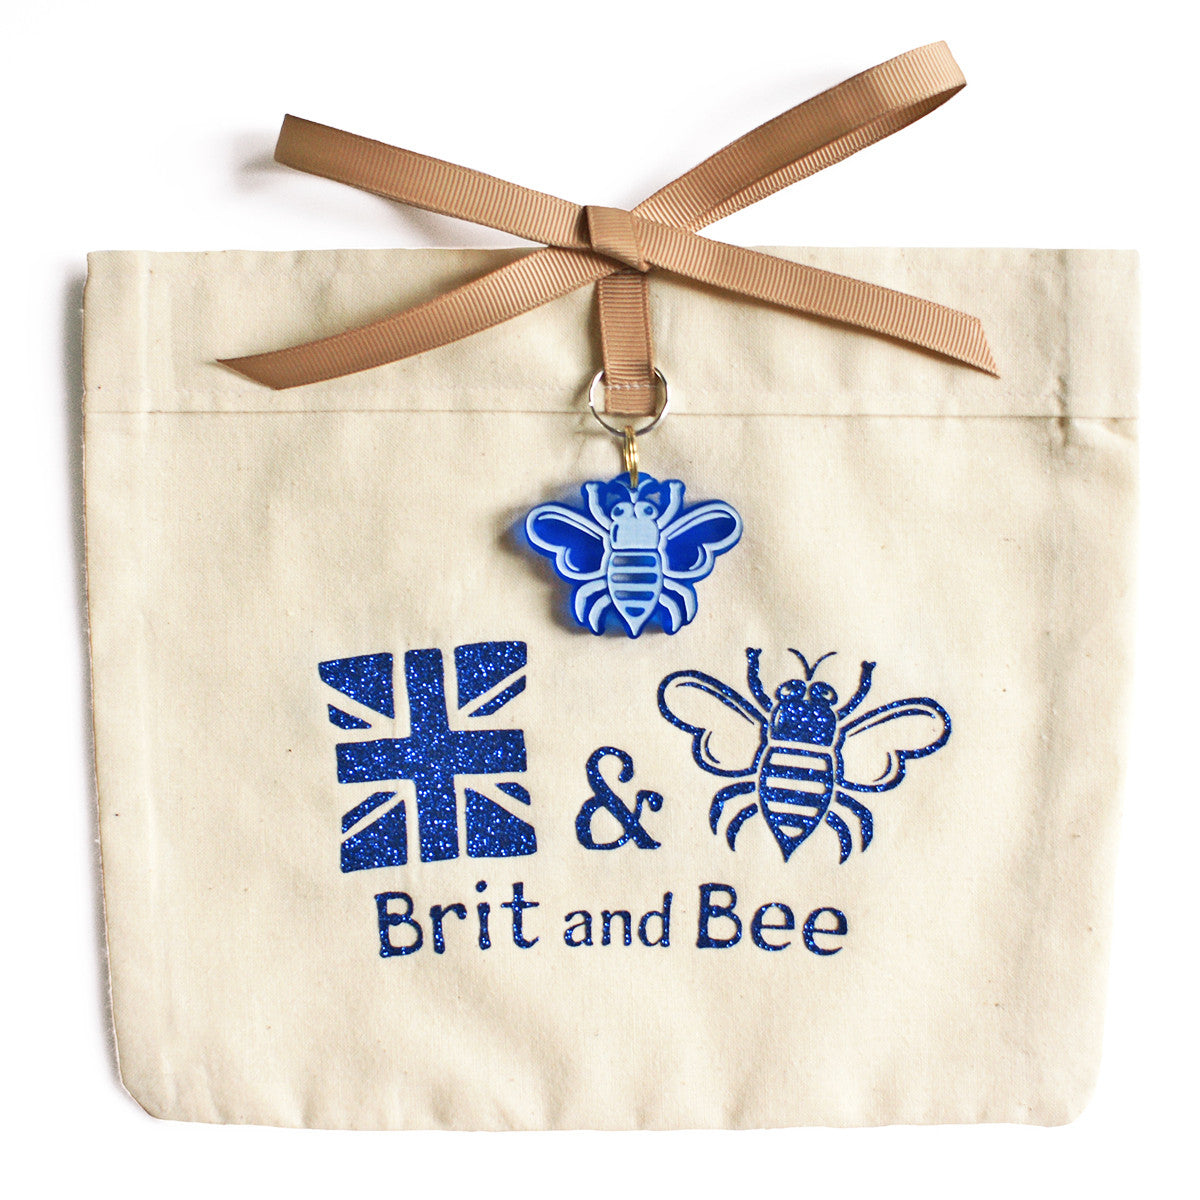 Brit and Bee Sorority Monogram Coaster - Sigma Delta Tau